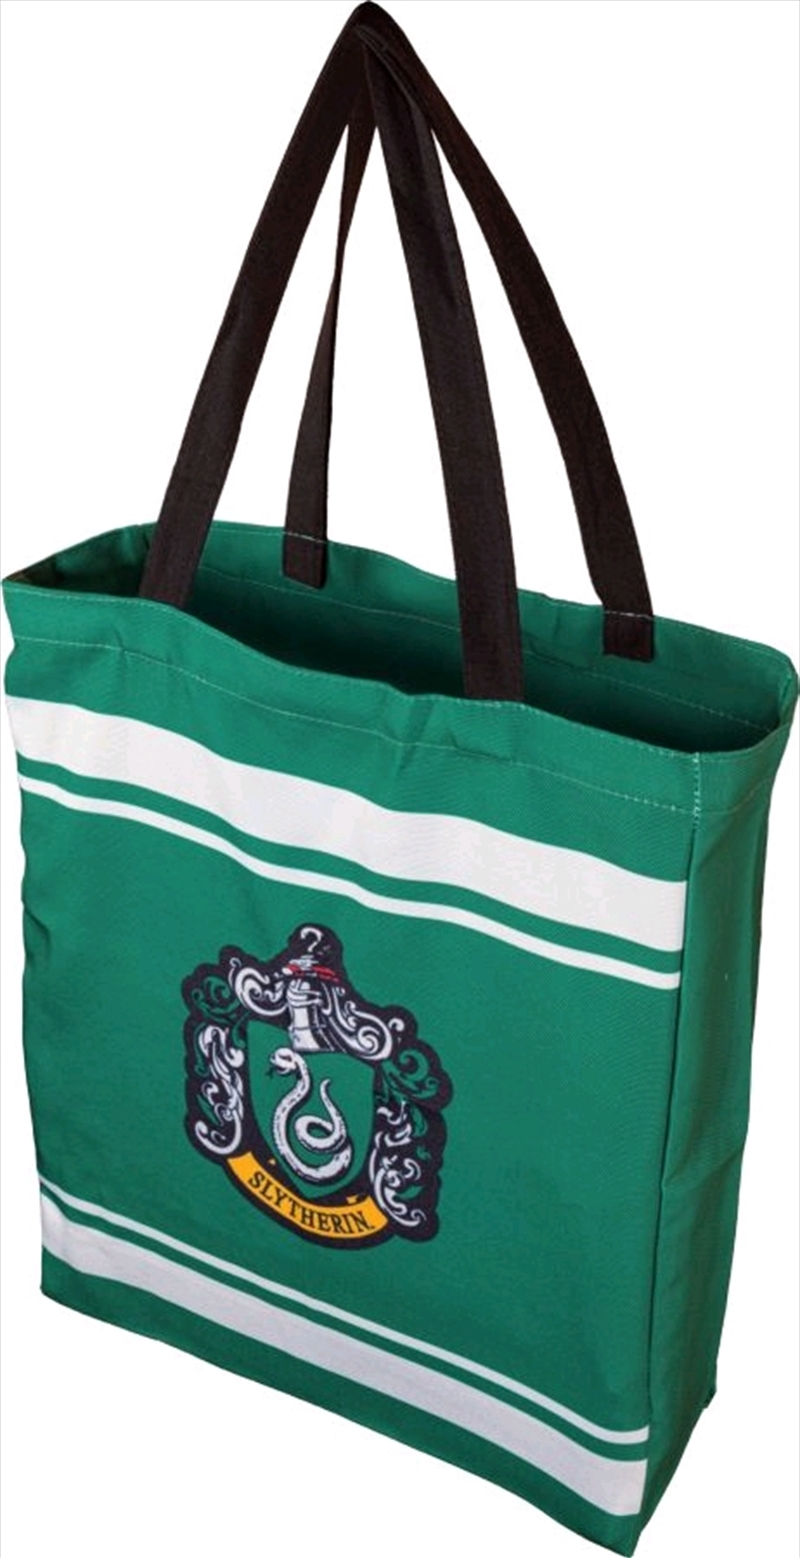 Harry Potter - Slytherin Crest Shopper Bag | Apparel